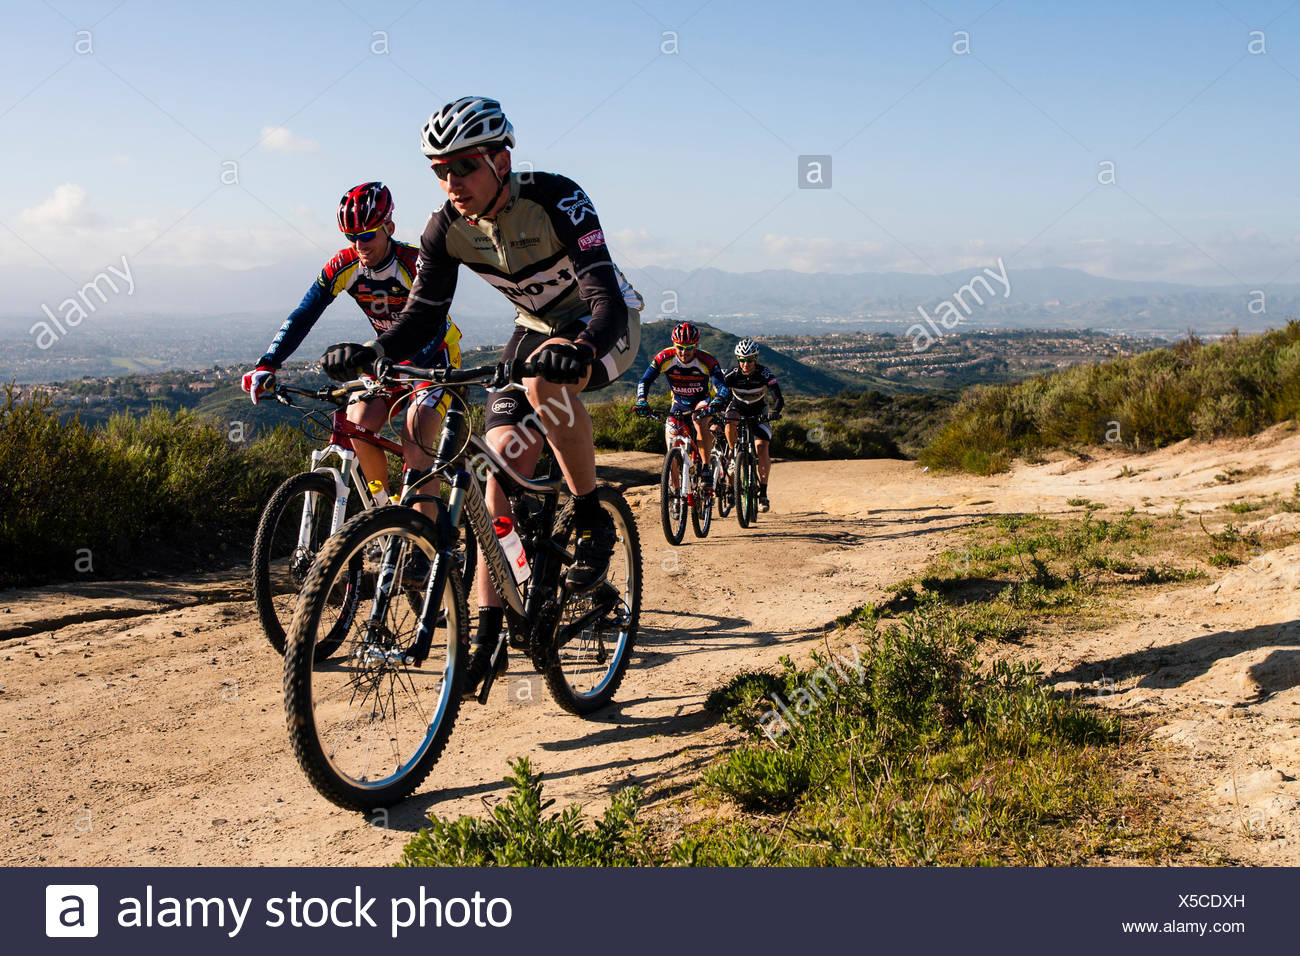 Riders from Troupe Racing and Cytomax KHS racing ride cross country together Southern Califonia. Feb 24th 2011 - Stock Image